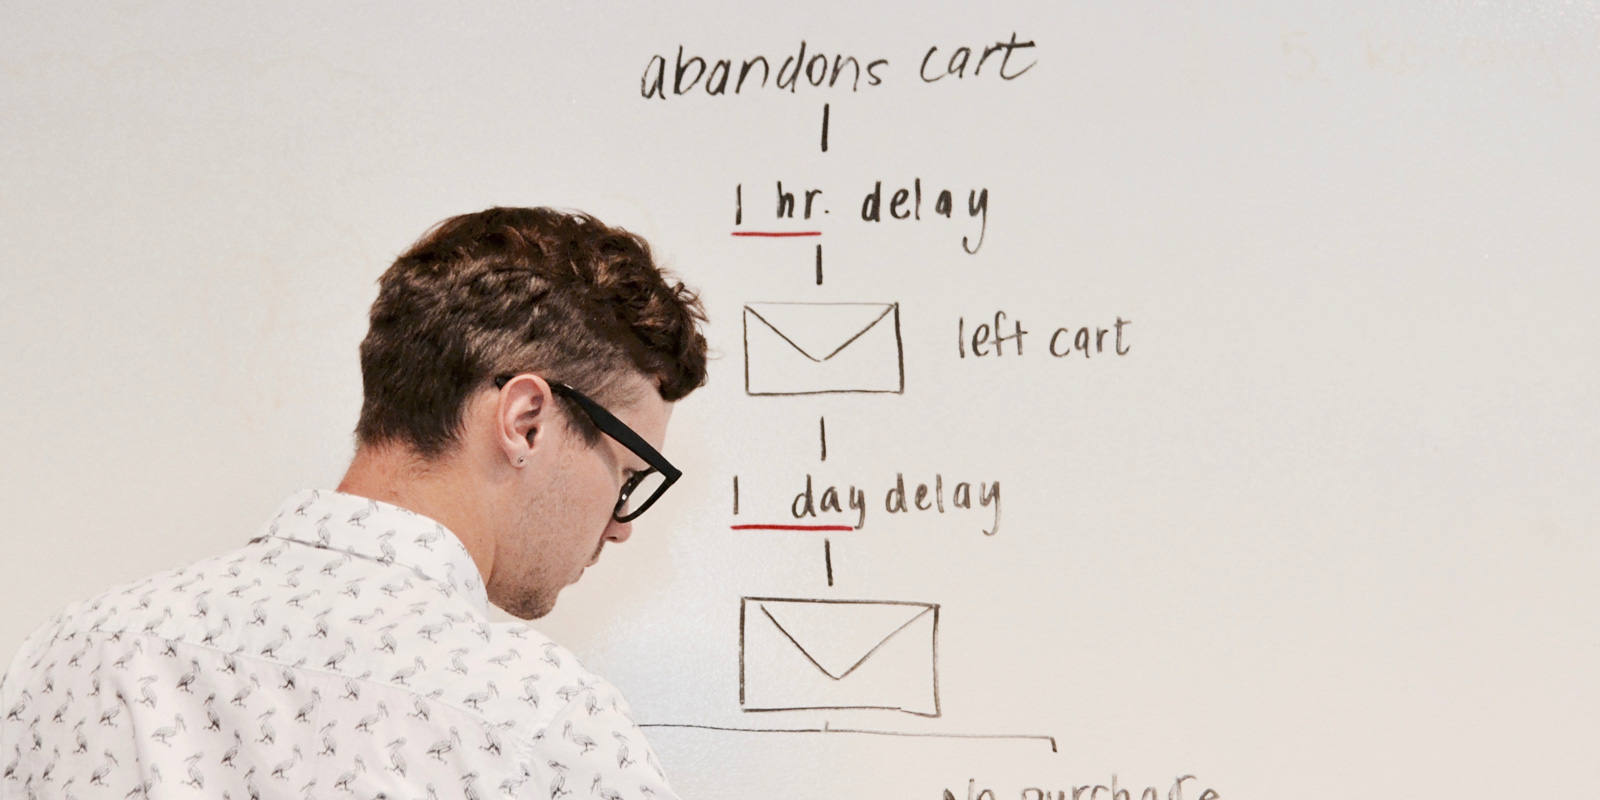 A man at a whiteboard draws a flow diagram depicting shopping cart abandonment.